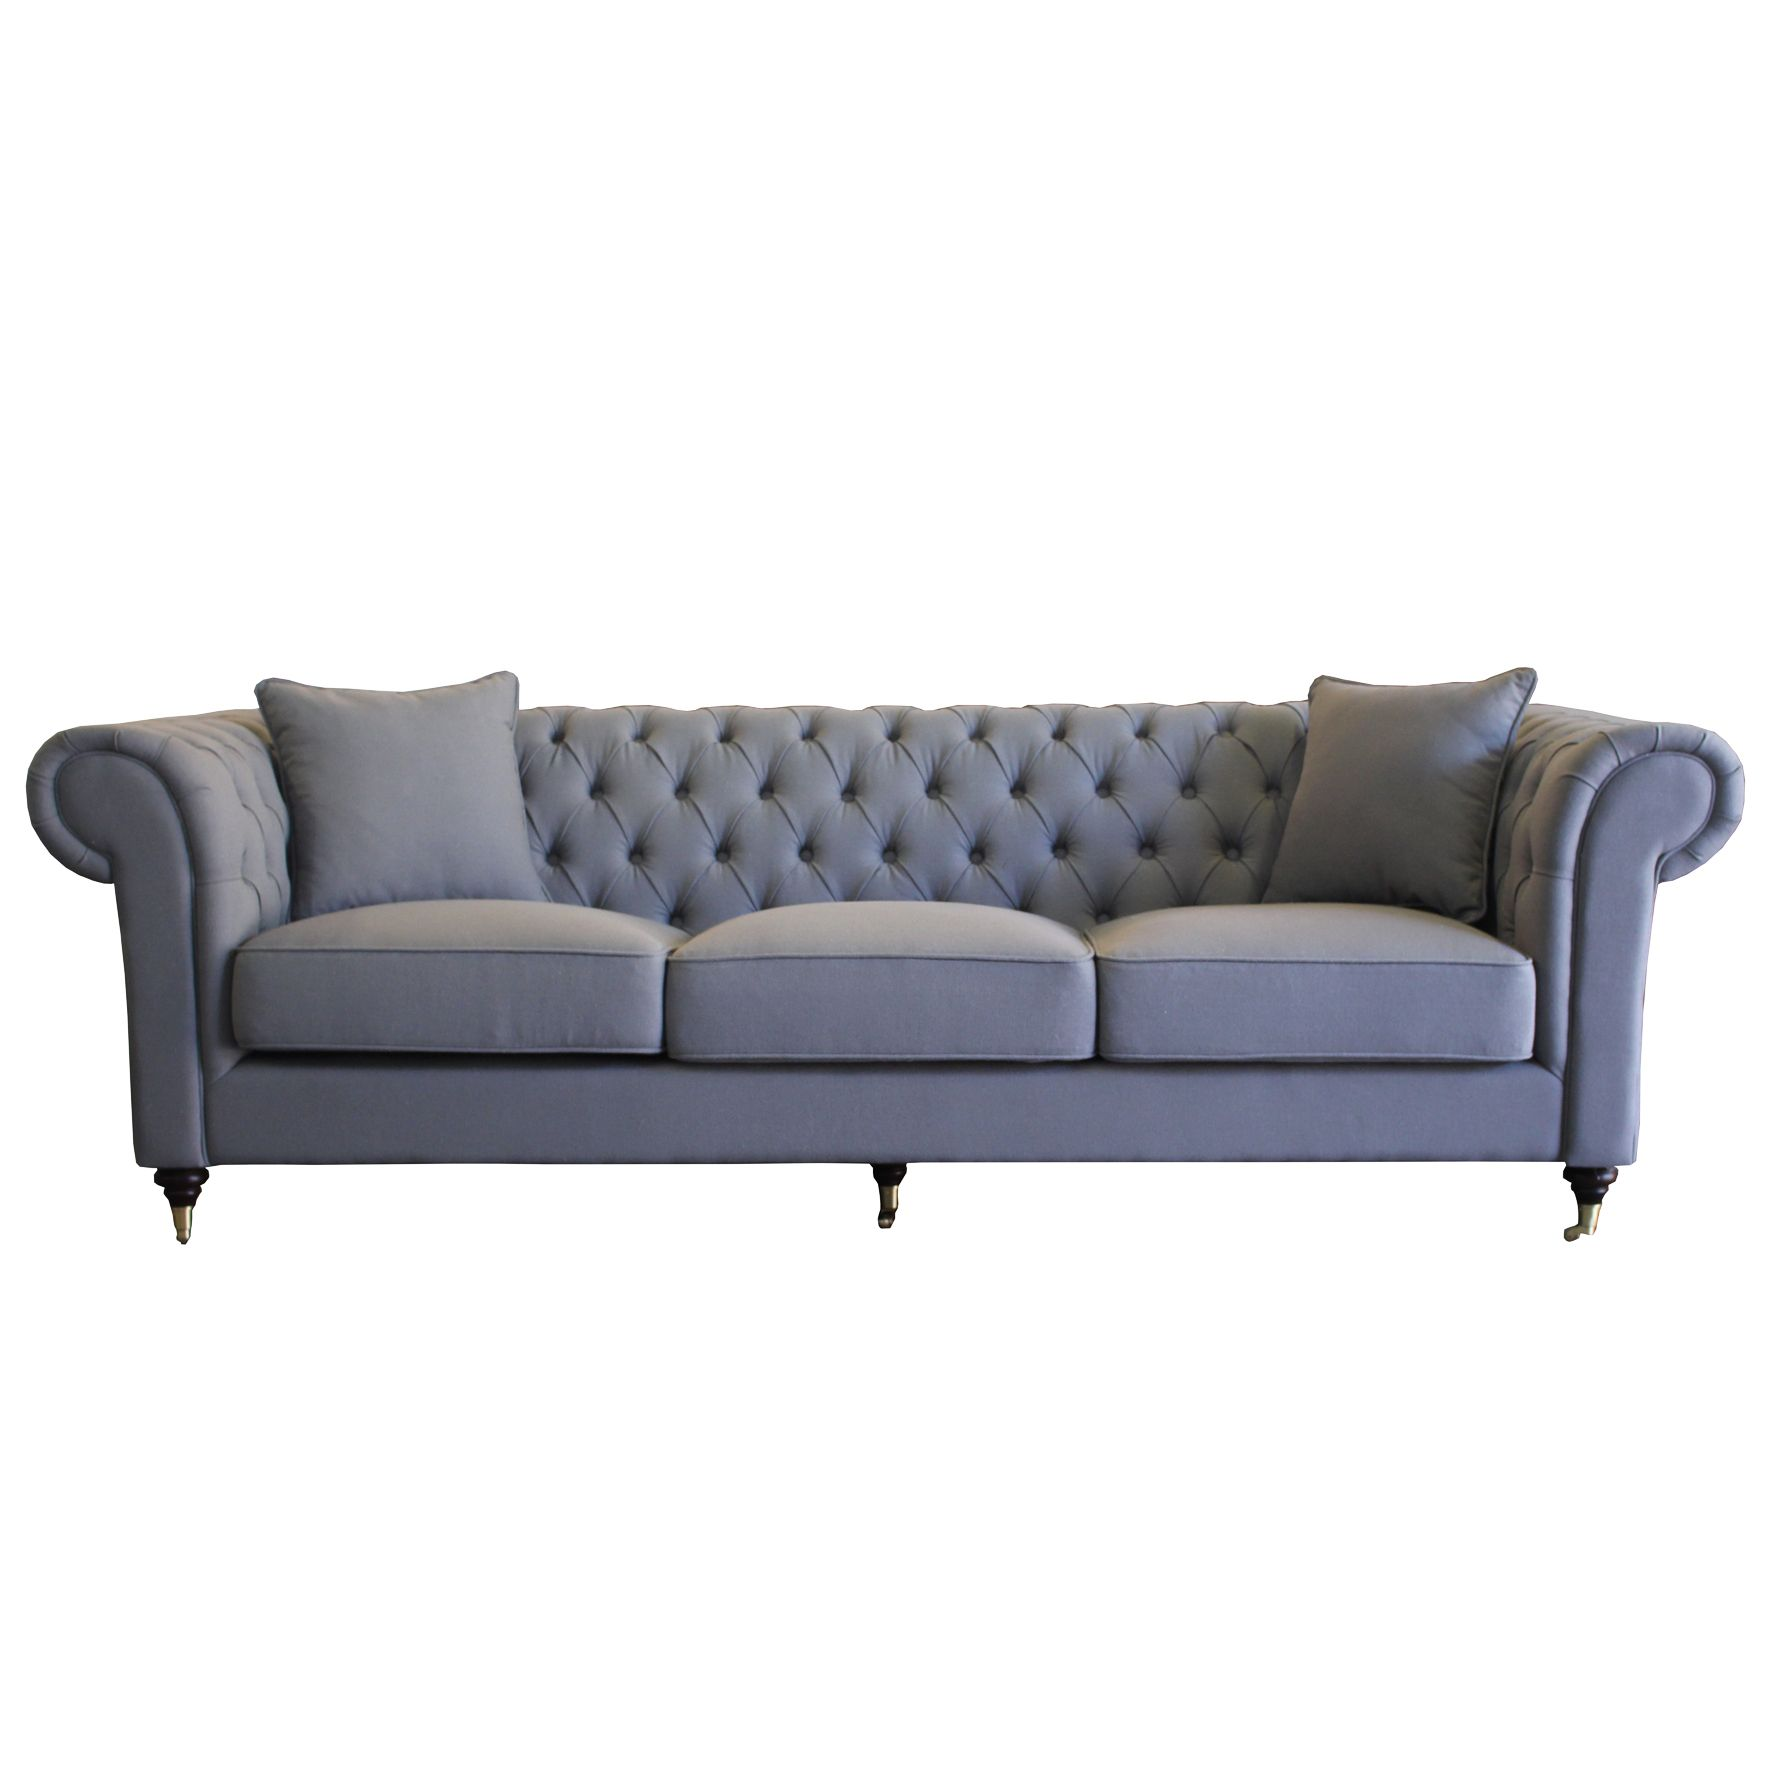 Grey Chesterfield Sofa Perugia Products Seating